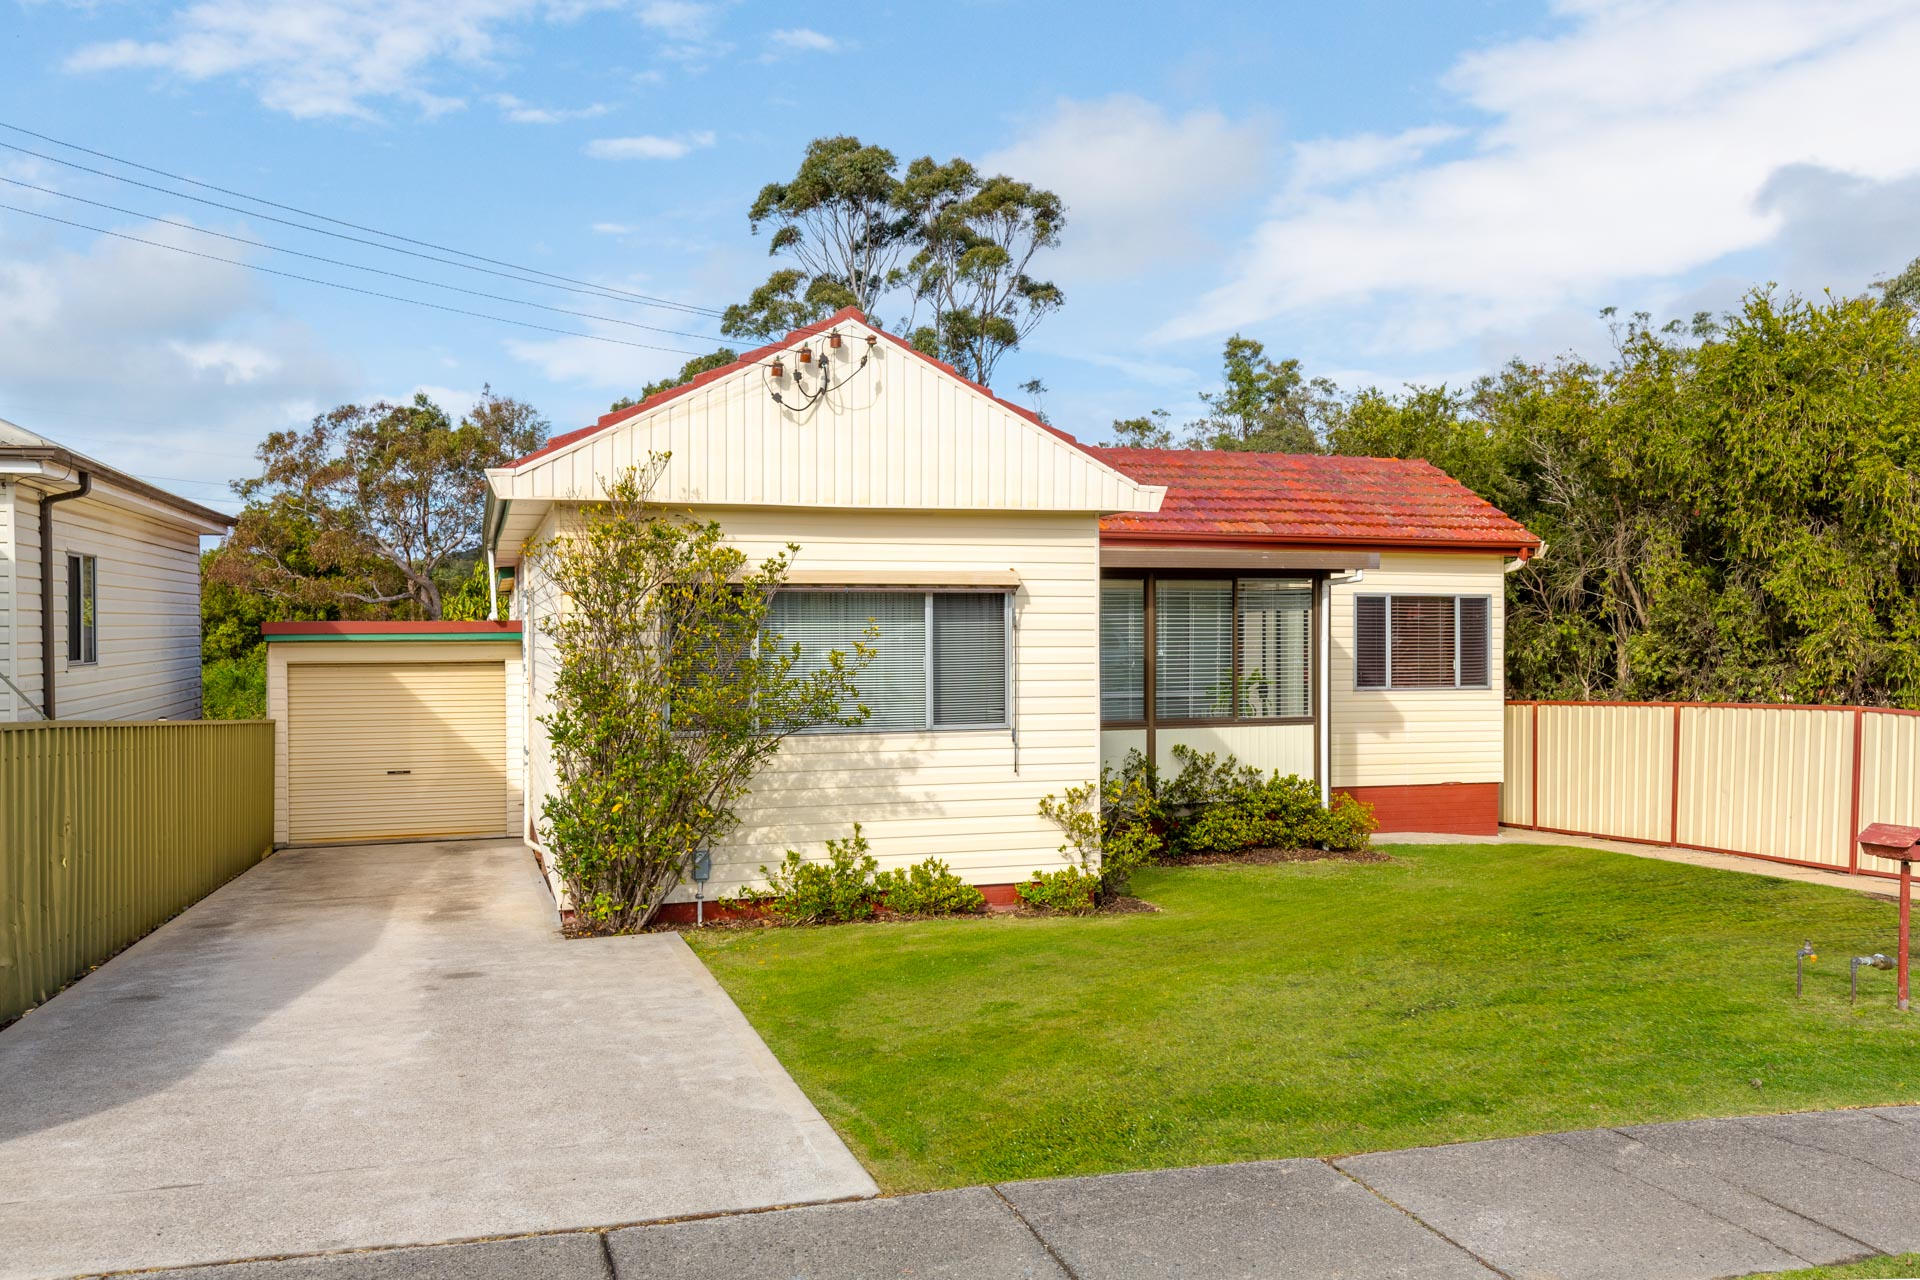 119 Croudace Rd   elermore Vale (1 of 18)